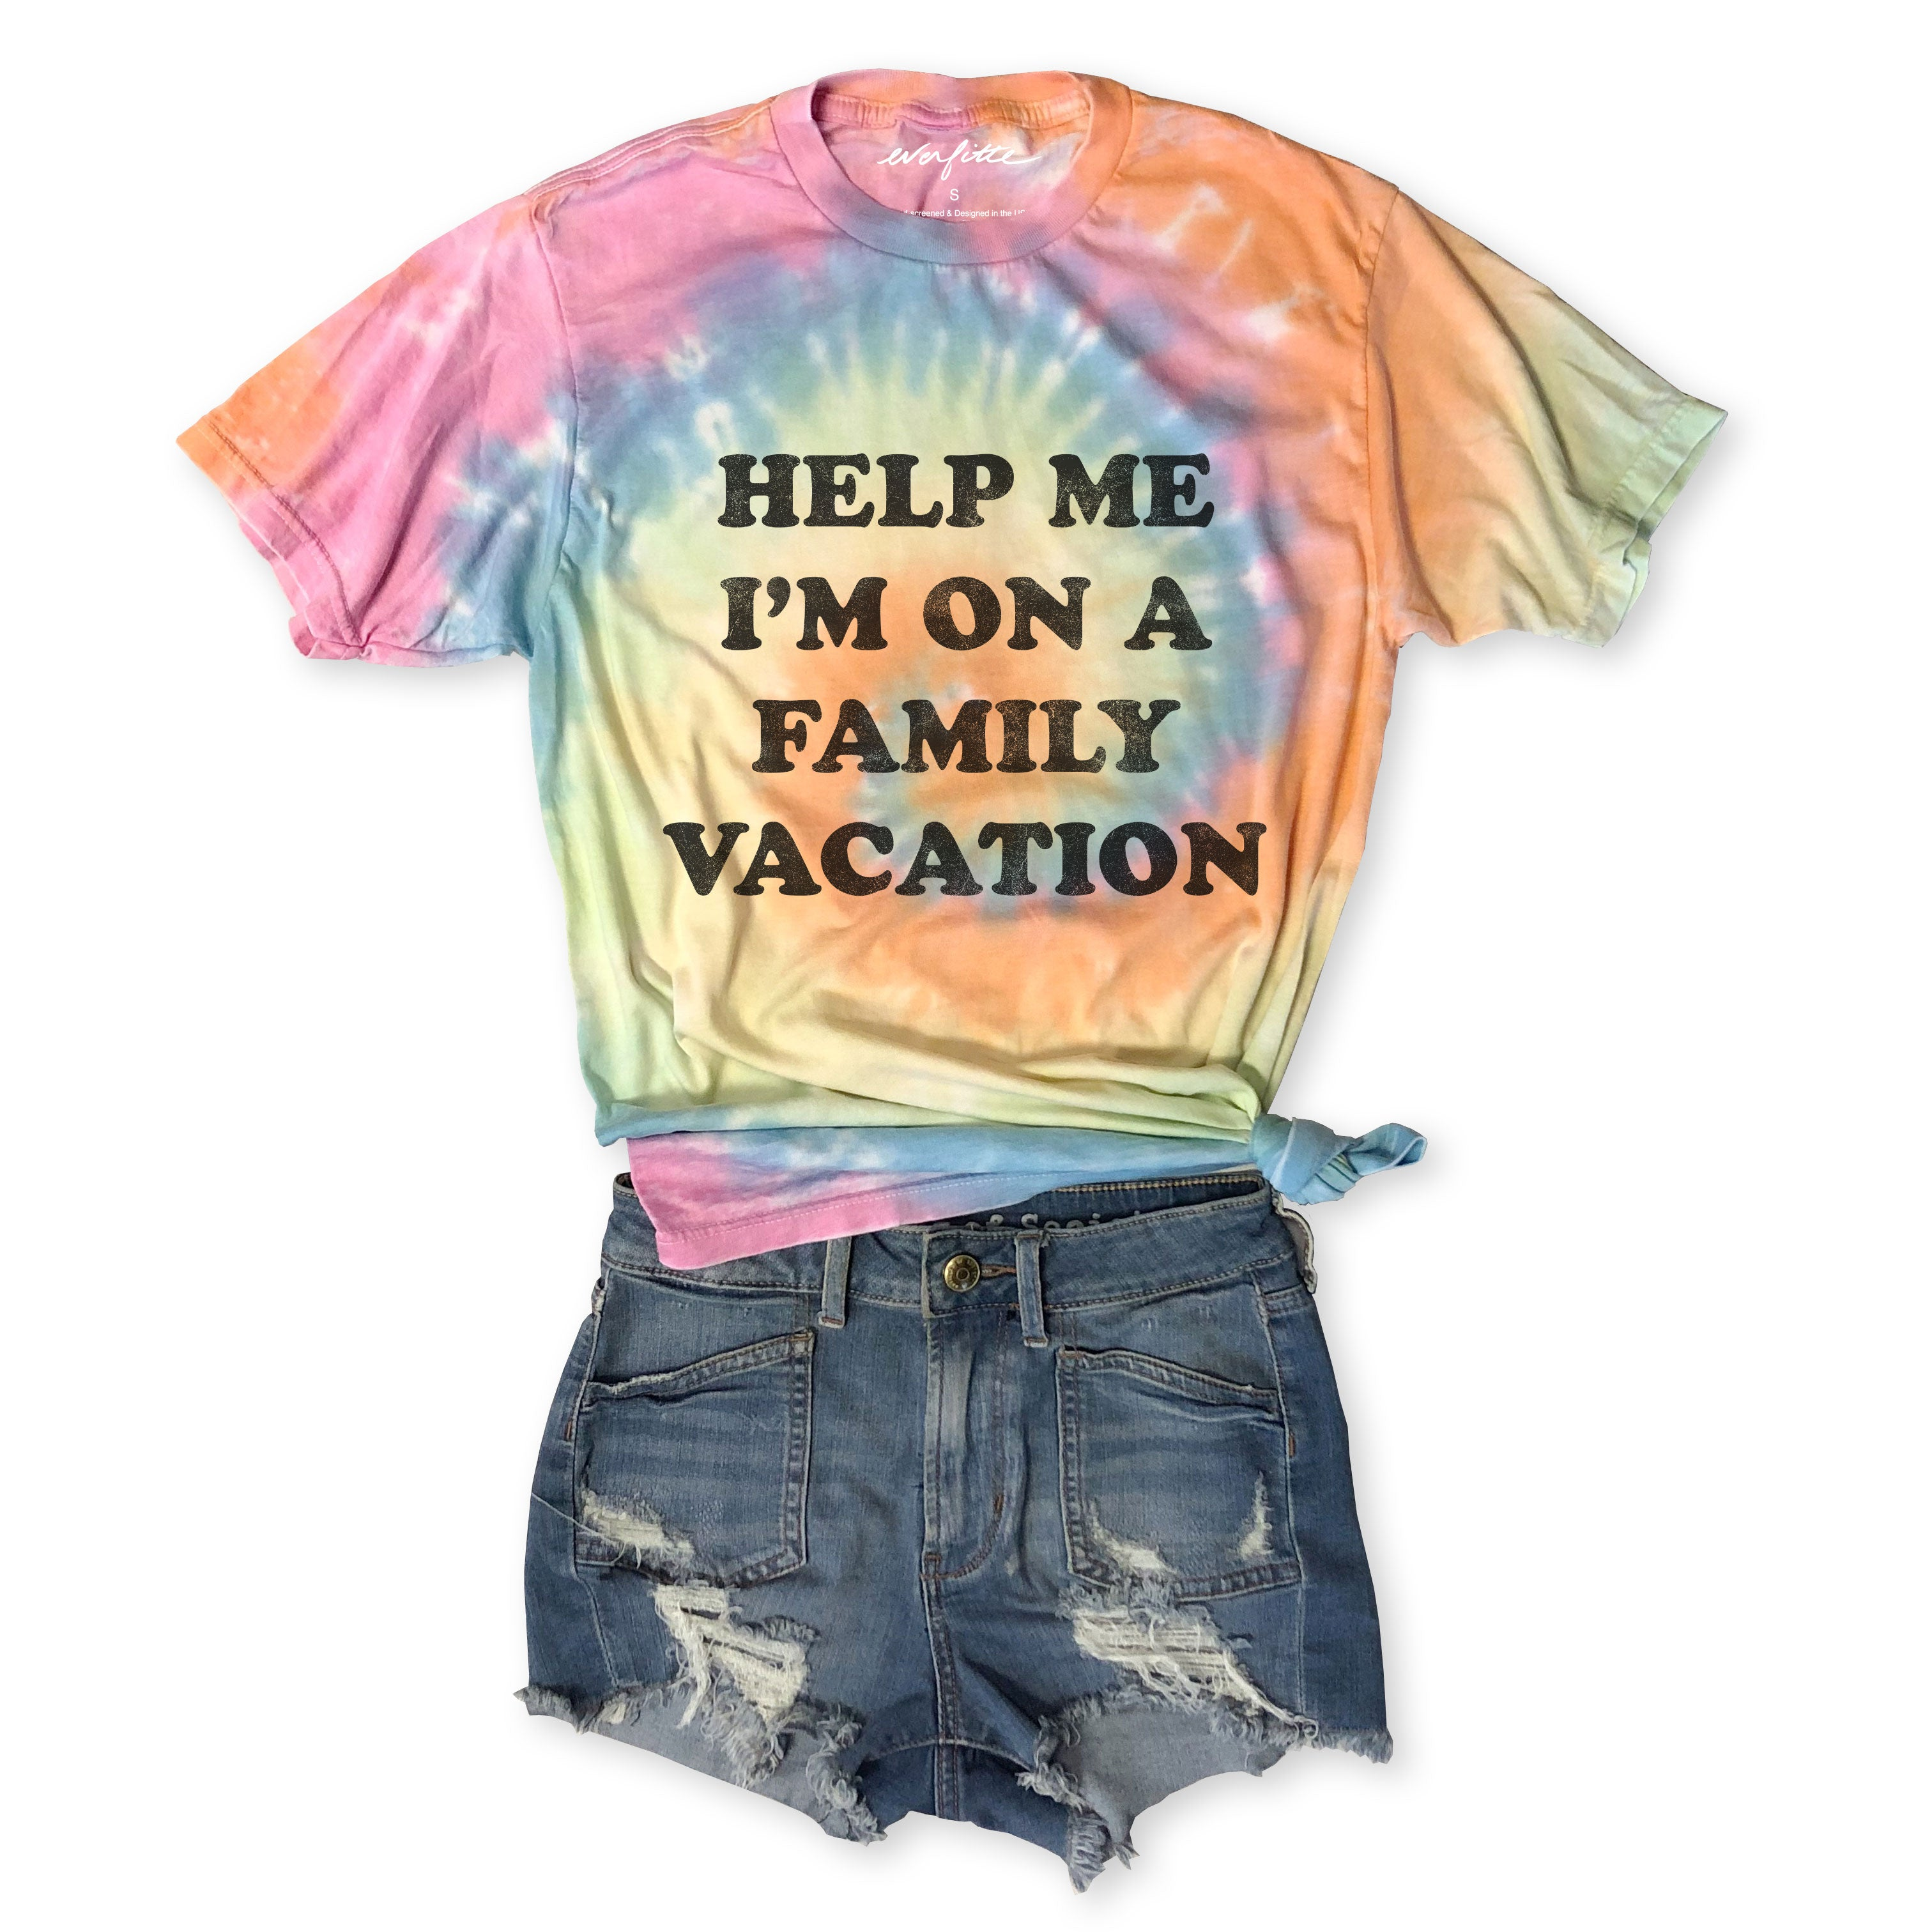 Sale!!  Help Me I'm On A Family Vacation...Funny Cotton Tie Dye Tee